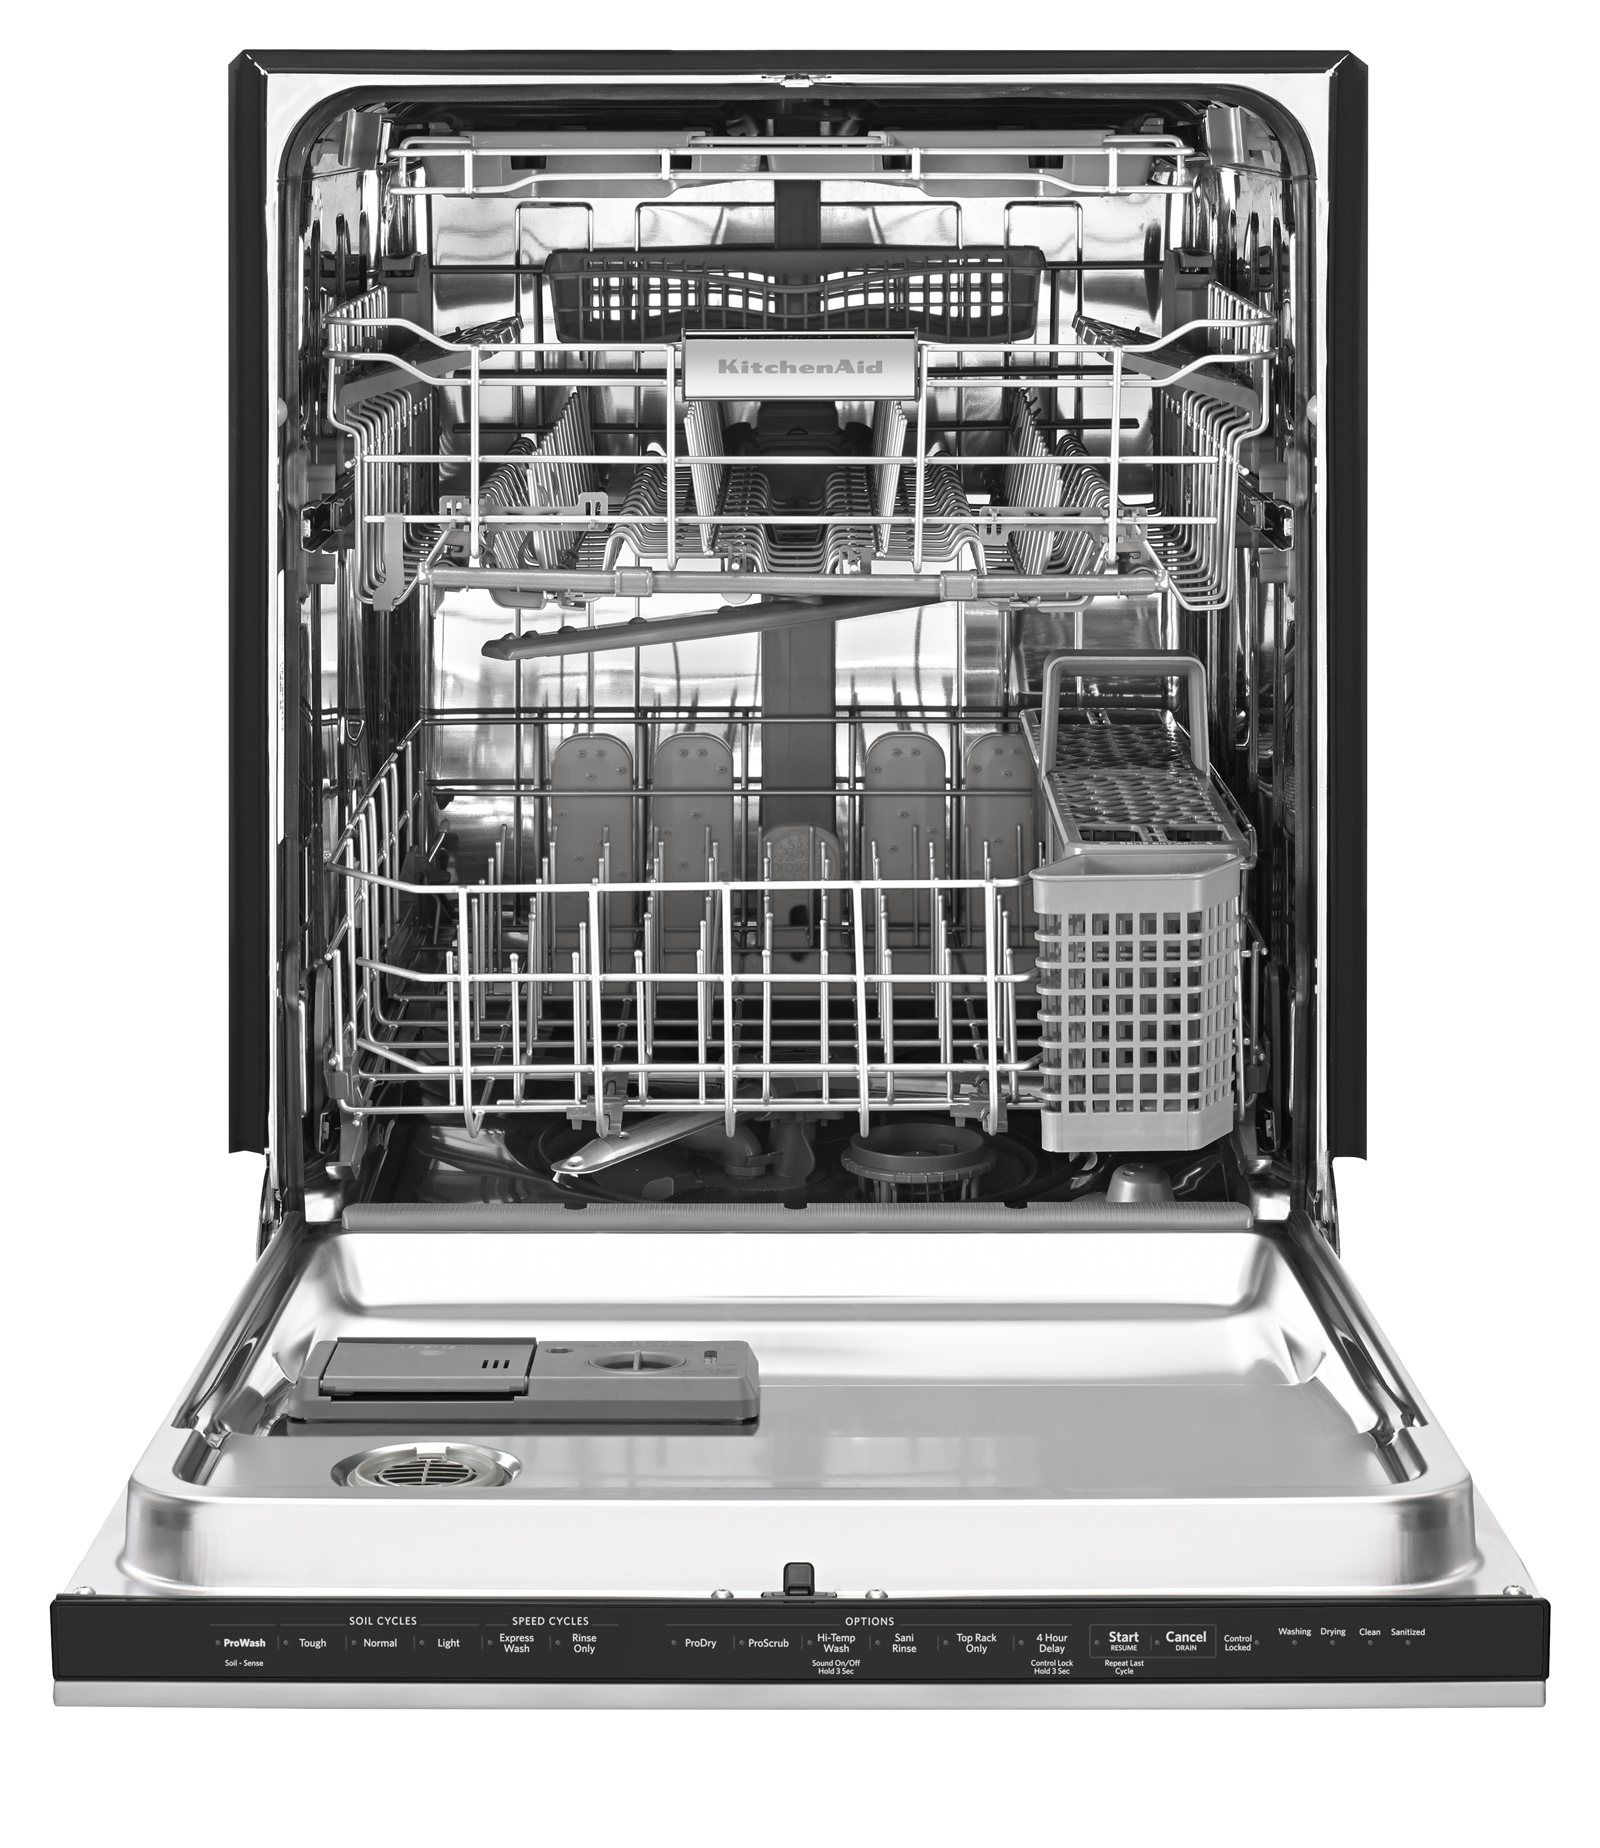 KitchenAid 24-in. Built-in Dishwasher w/ Ultra Handle and Third Rack - Stainless Steel